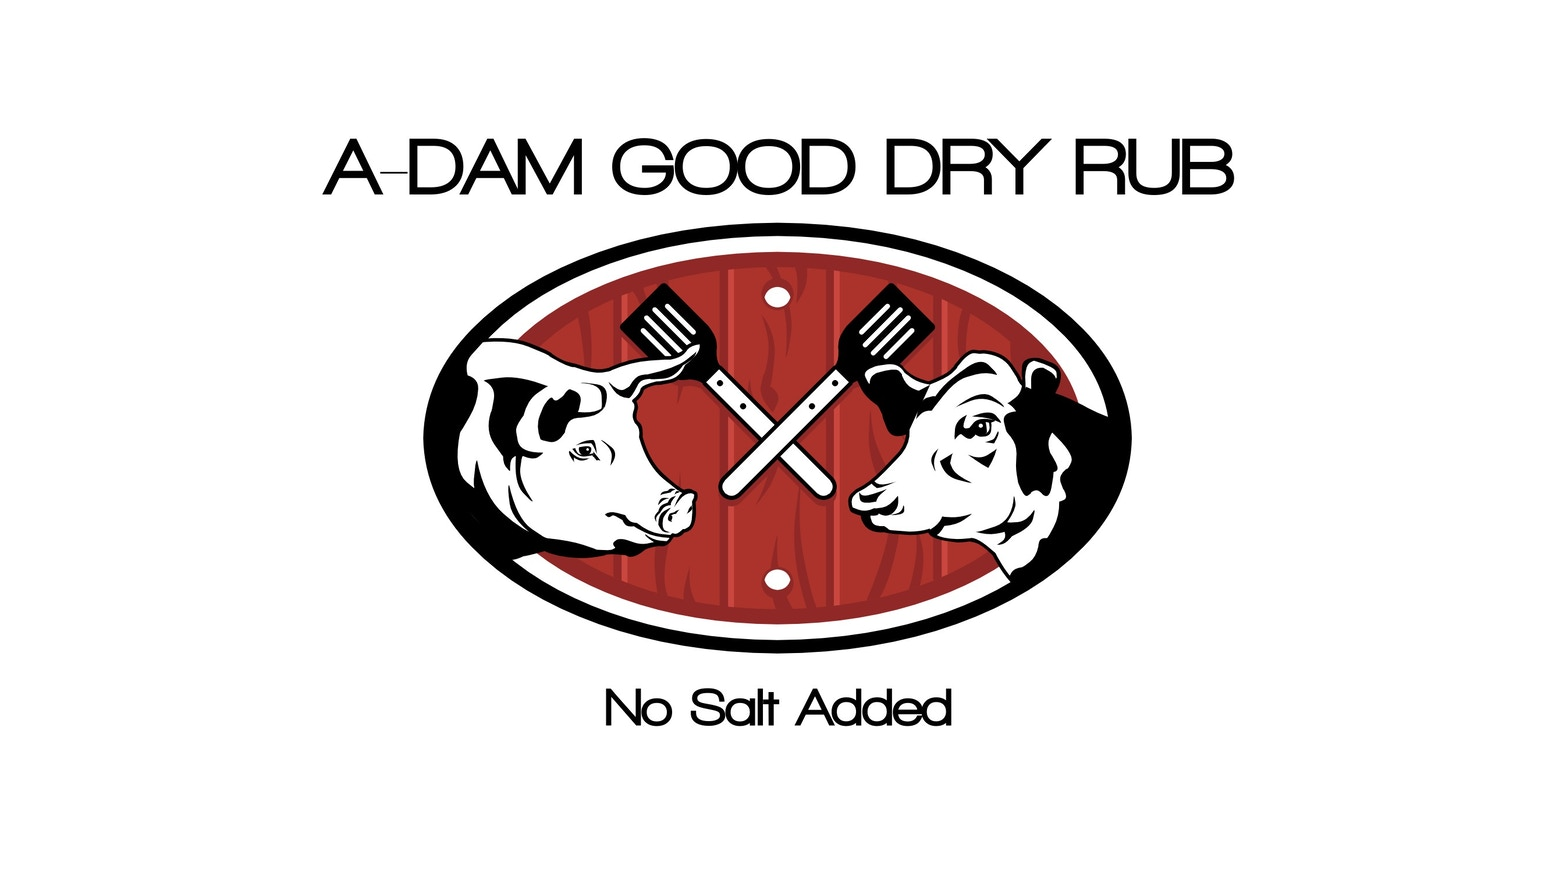 At A-dam Good Dry Rubs, we make a no salt added Dry Rub that accentuates the true taste of food rather than masking it with salt.